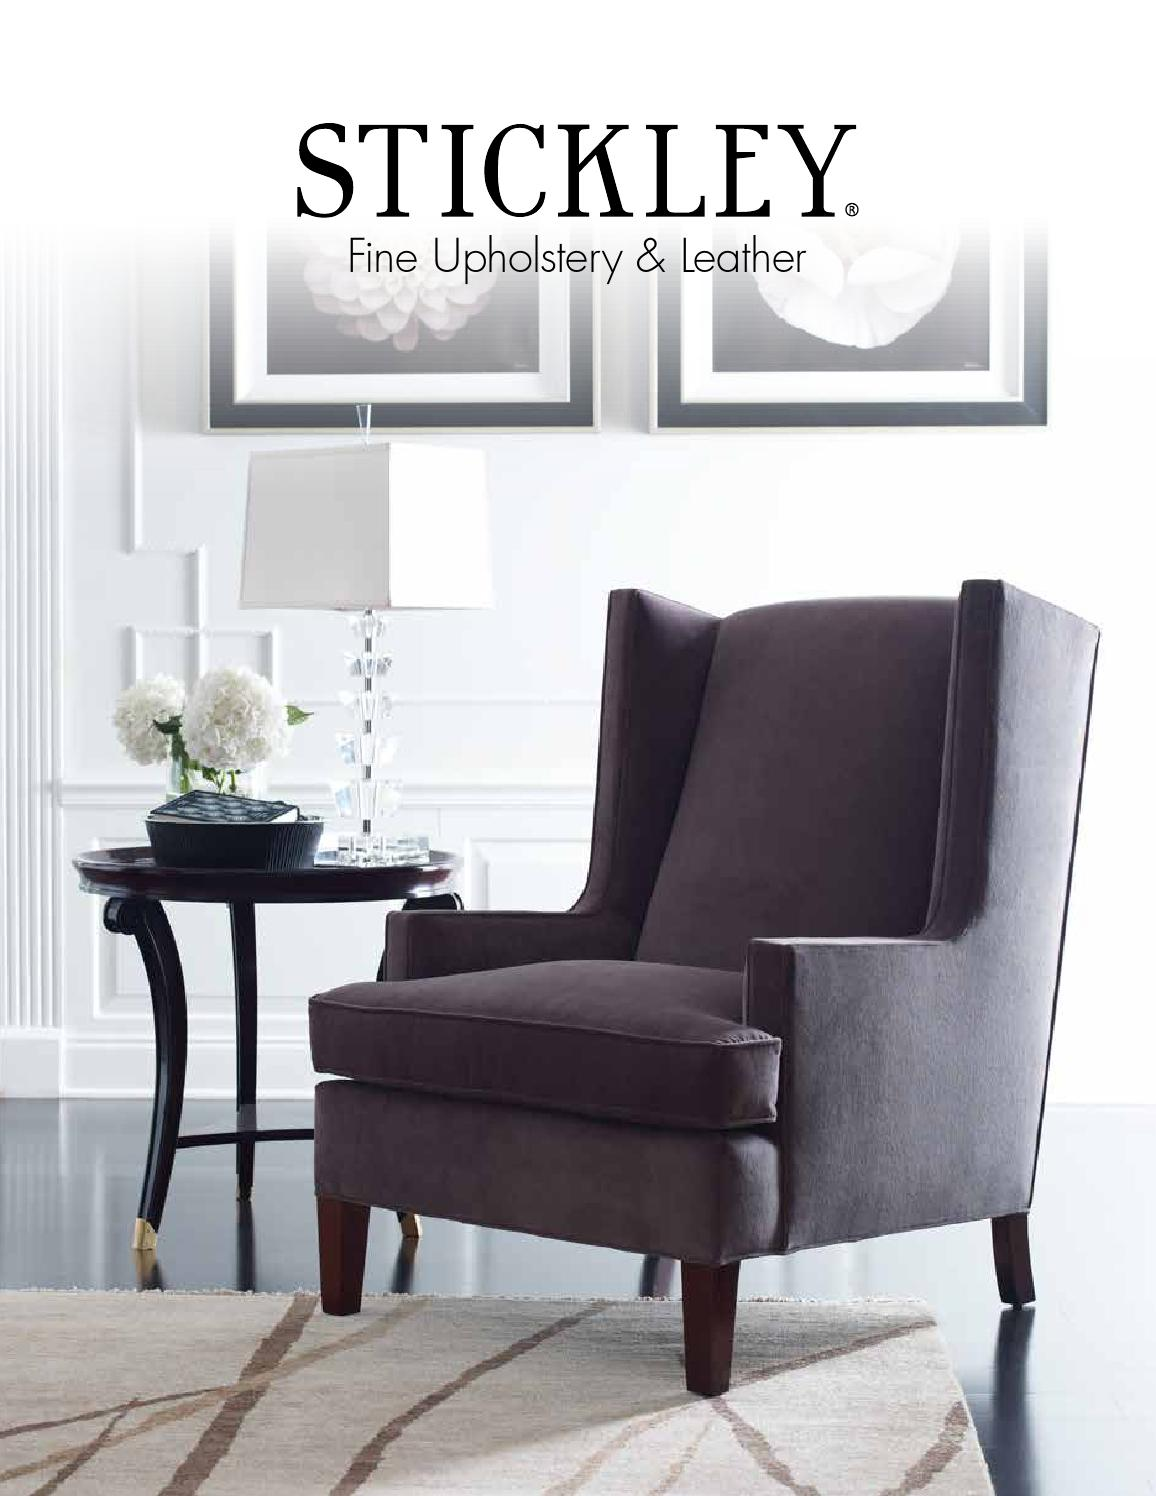 stickley furniture leather sofas gunstige bettsofas ch fine upholstery and catalog by